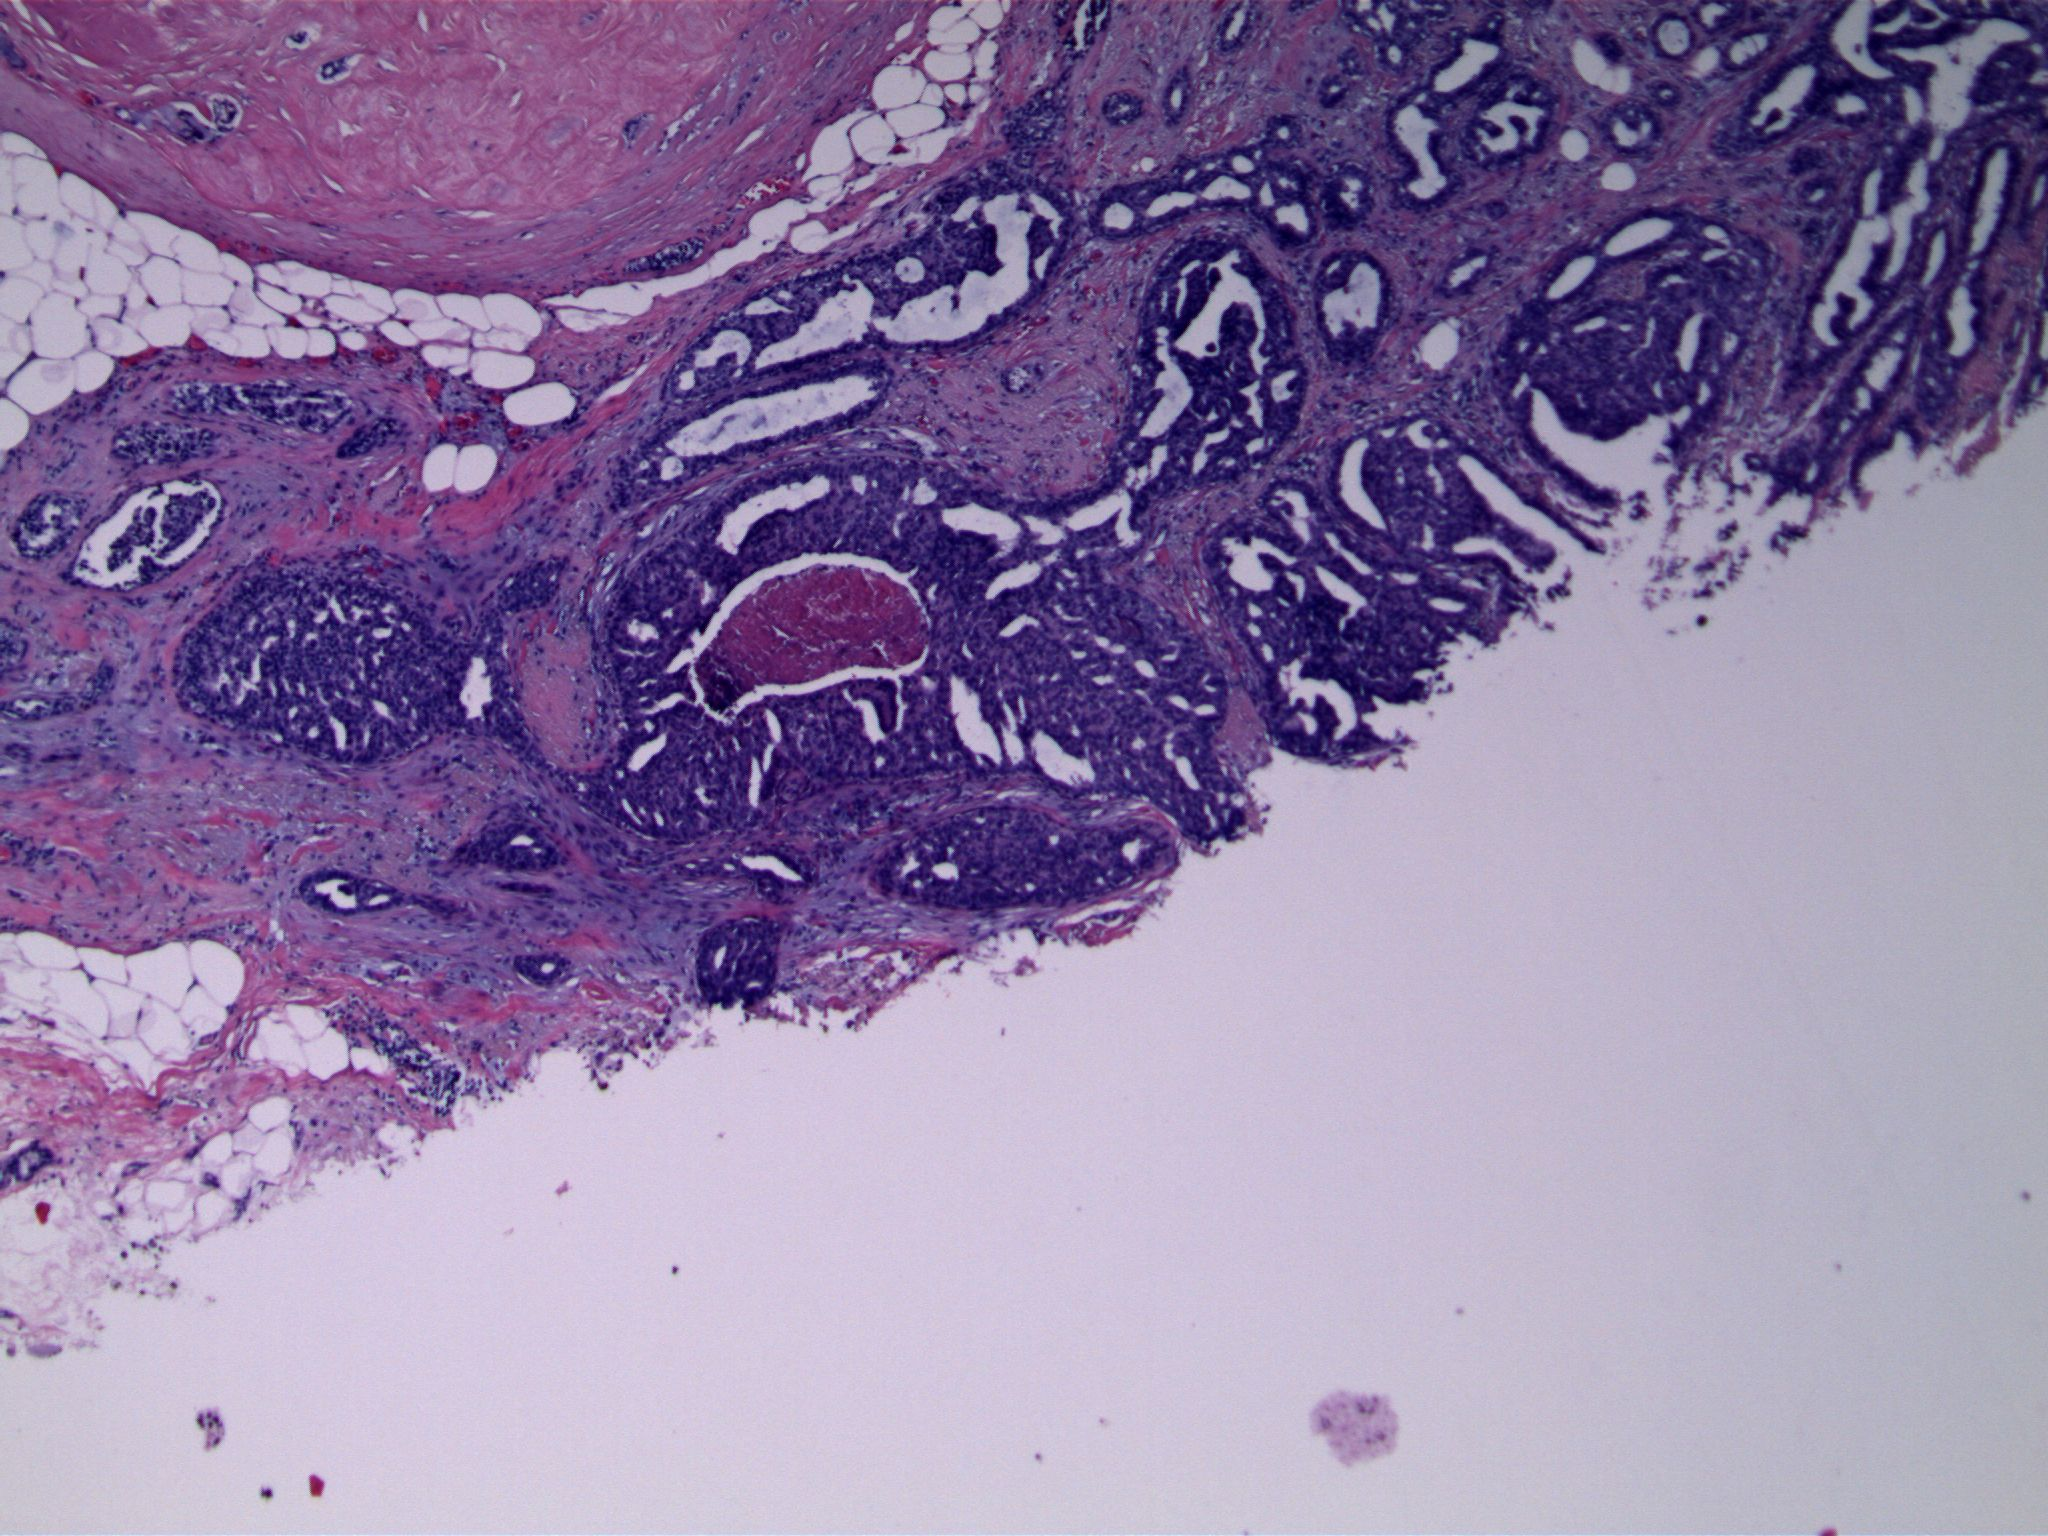 Image 1. An exuberant epithelial proliferation is present, associated with a sclerosed micropapilloma (upper left). Focal luminal necrosis is present.